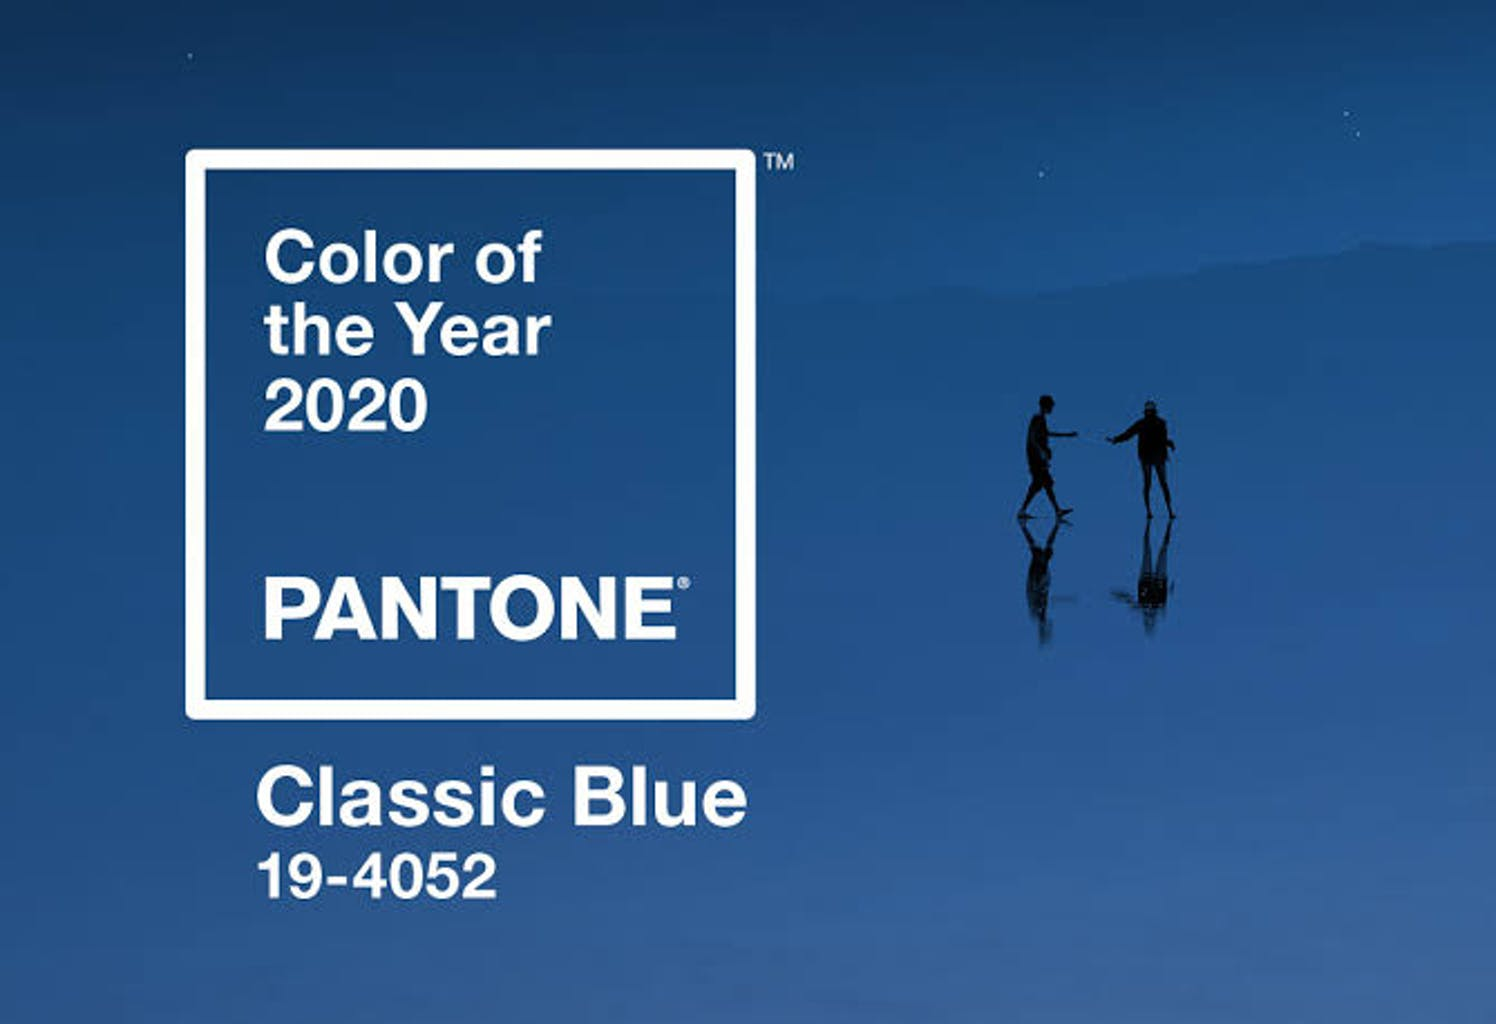 Pantone color of the year, SEEMA 2020, SEEMA magazine, SEEMA newsletter, SEEMA for Indian women leaders, SEEMA designers, SEEMA trends, SEEMA fashion, Pantone color of the year 2020